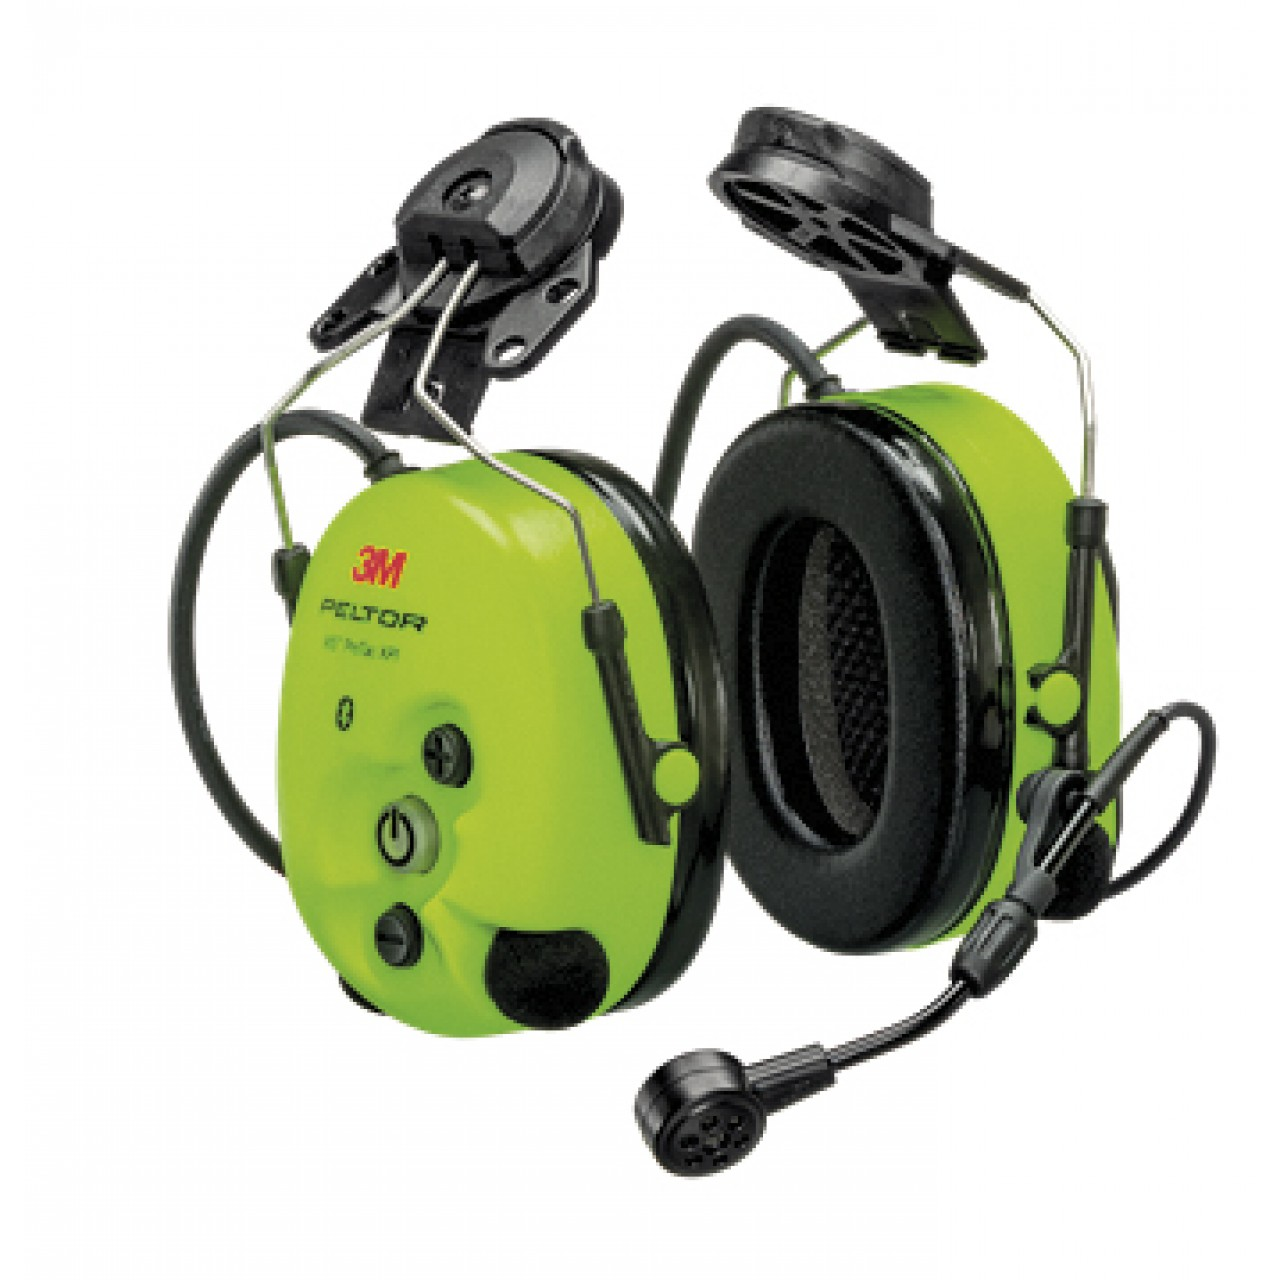 Casque aviation aéro PELTOR HS-PEACB-FLEX